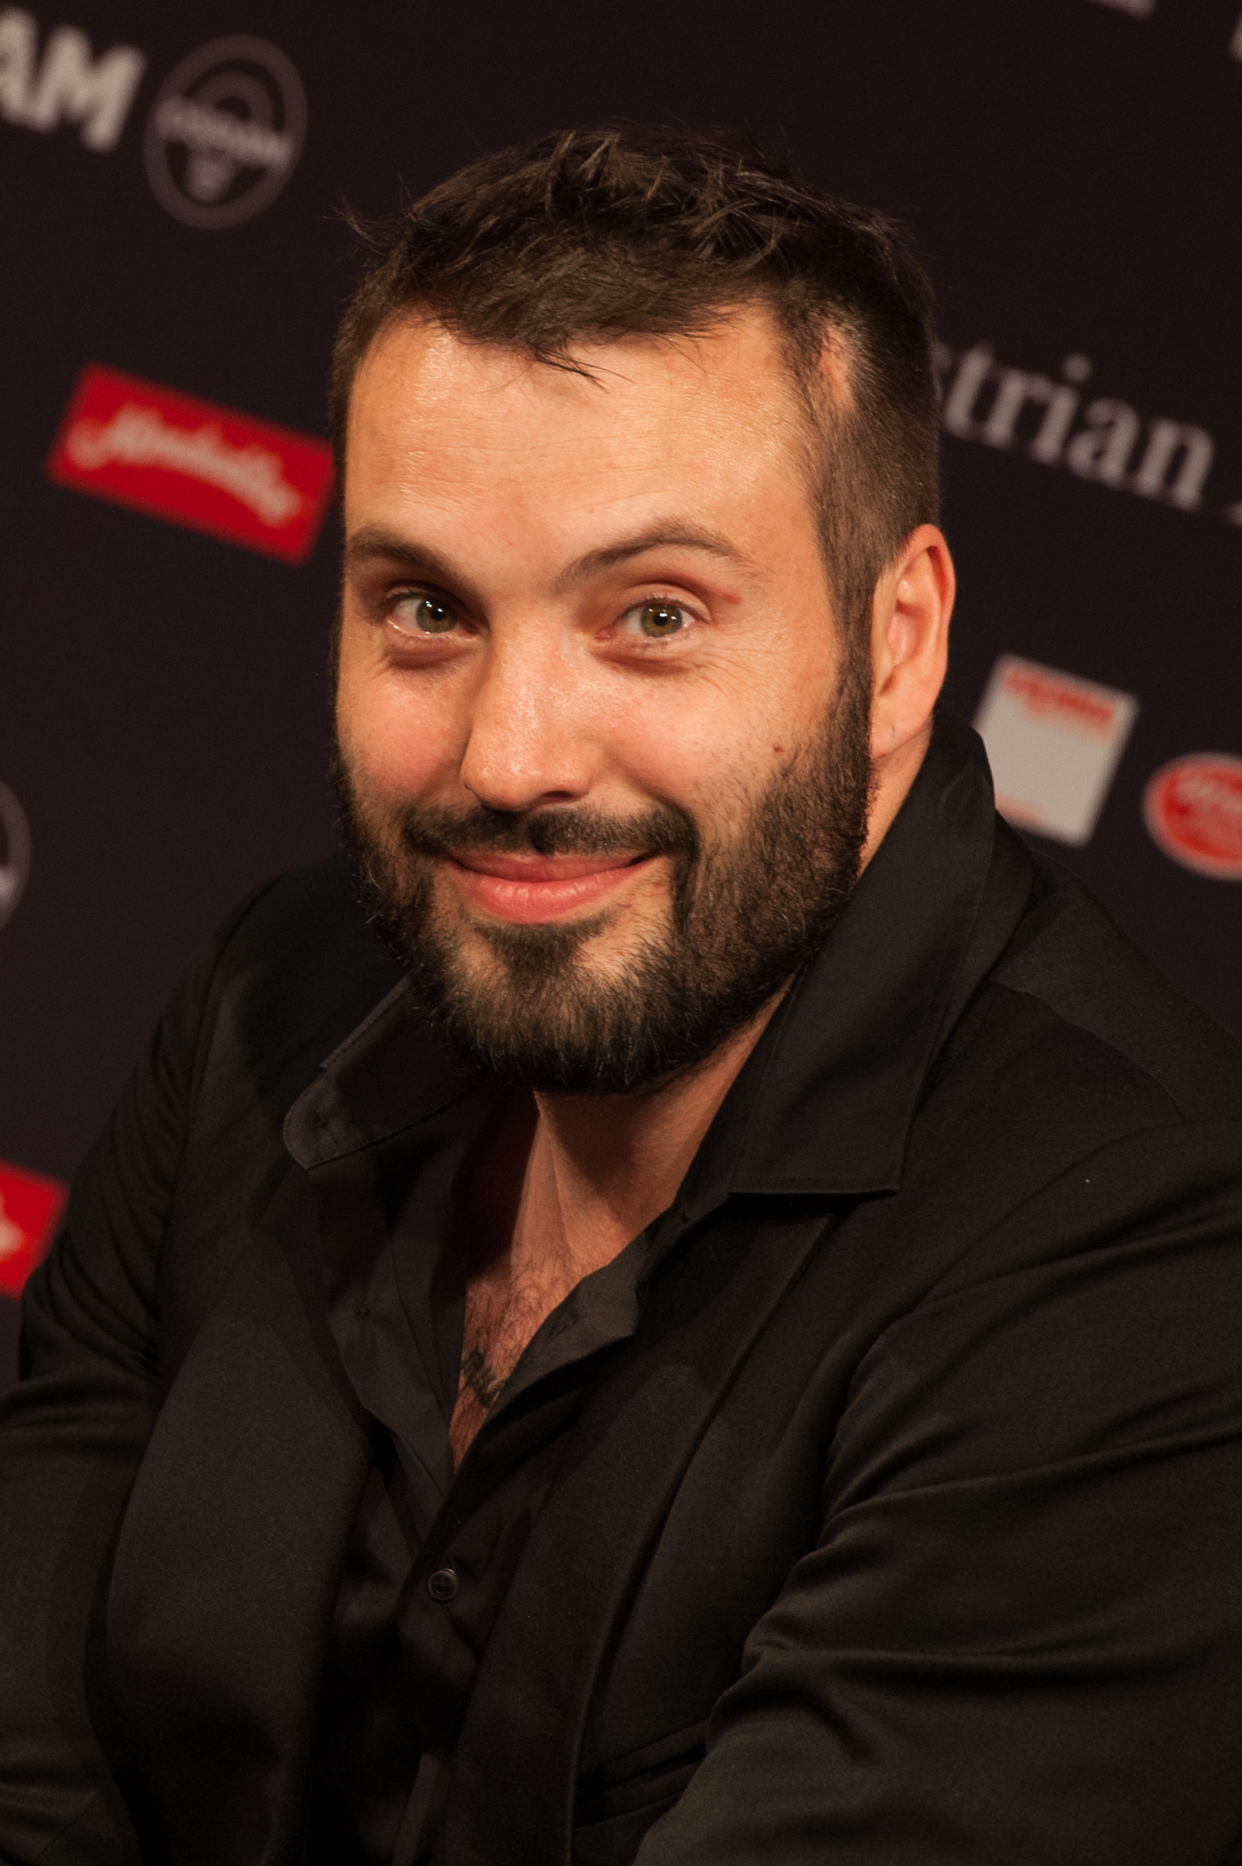 The 37-year old son of father (?) and mother(?), 188 cm tall Václav Noid Bárta in 2018 photo